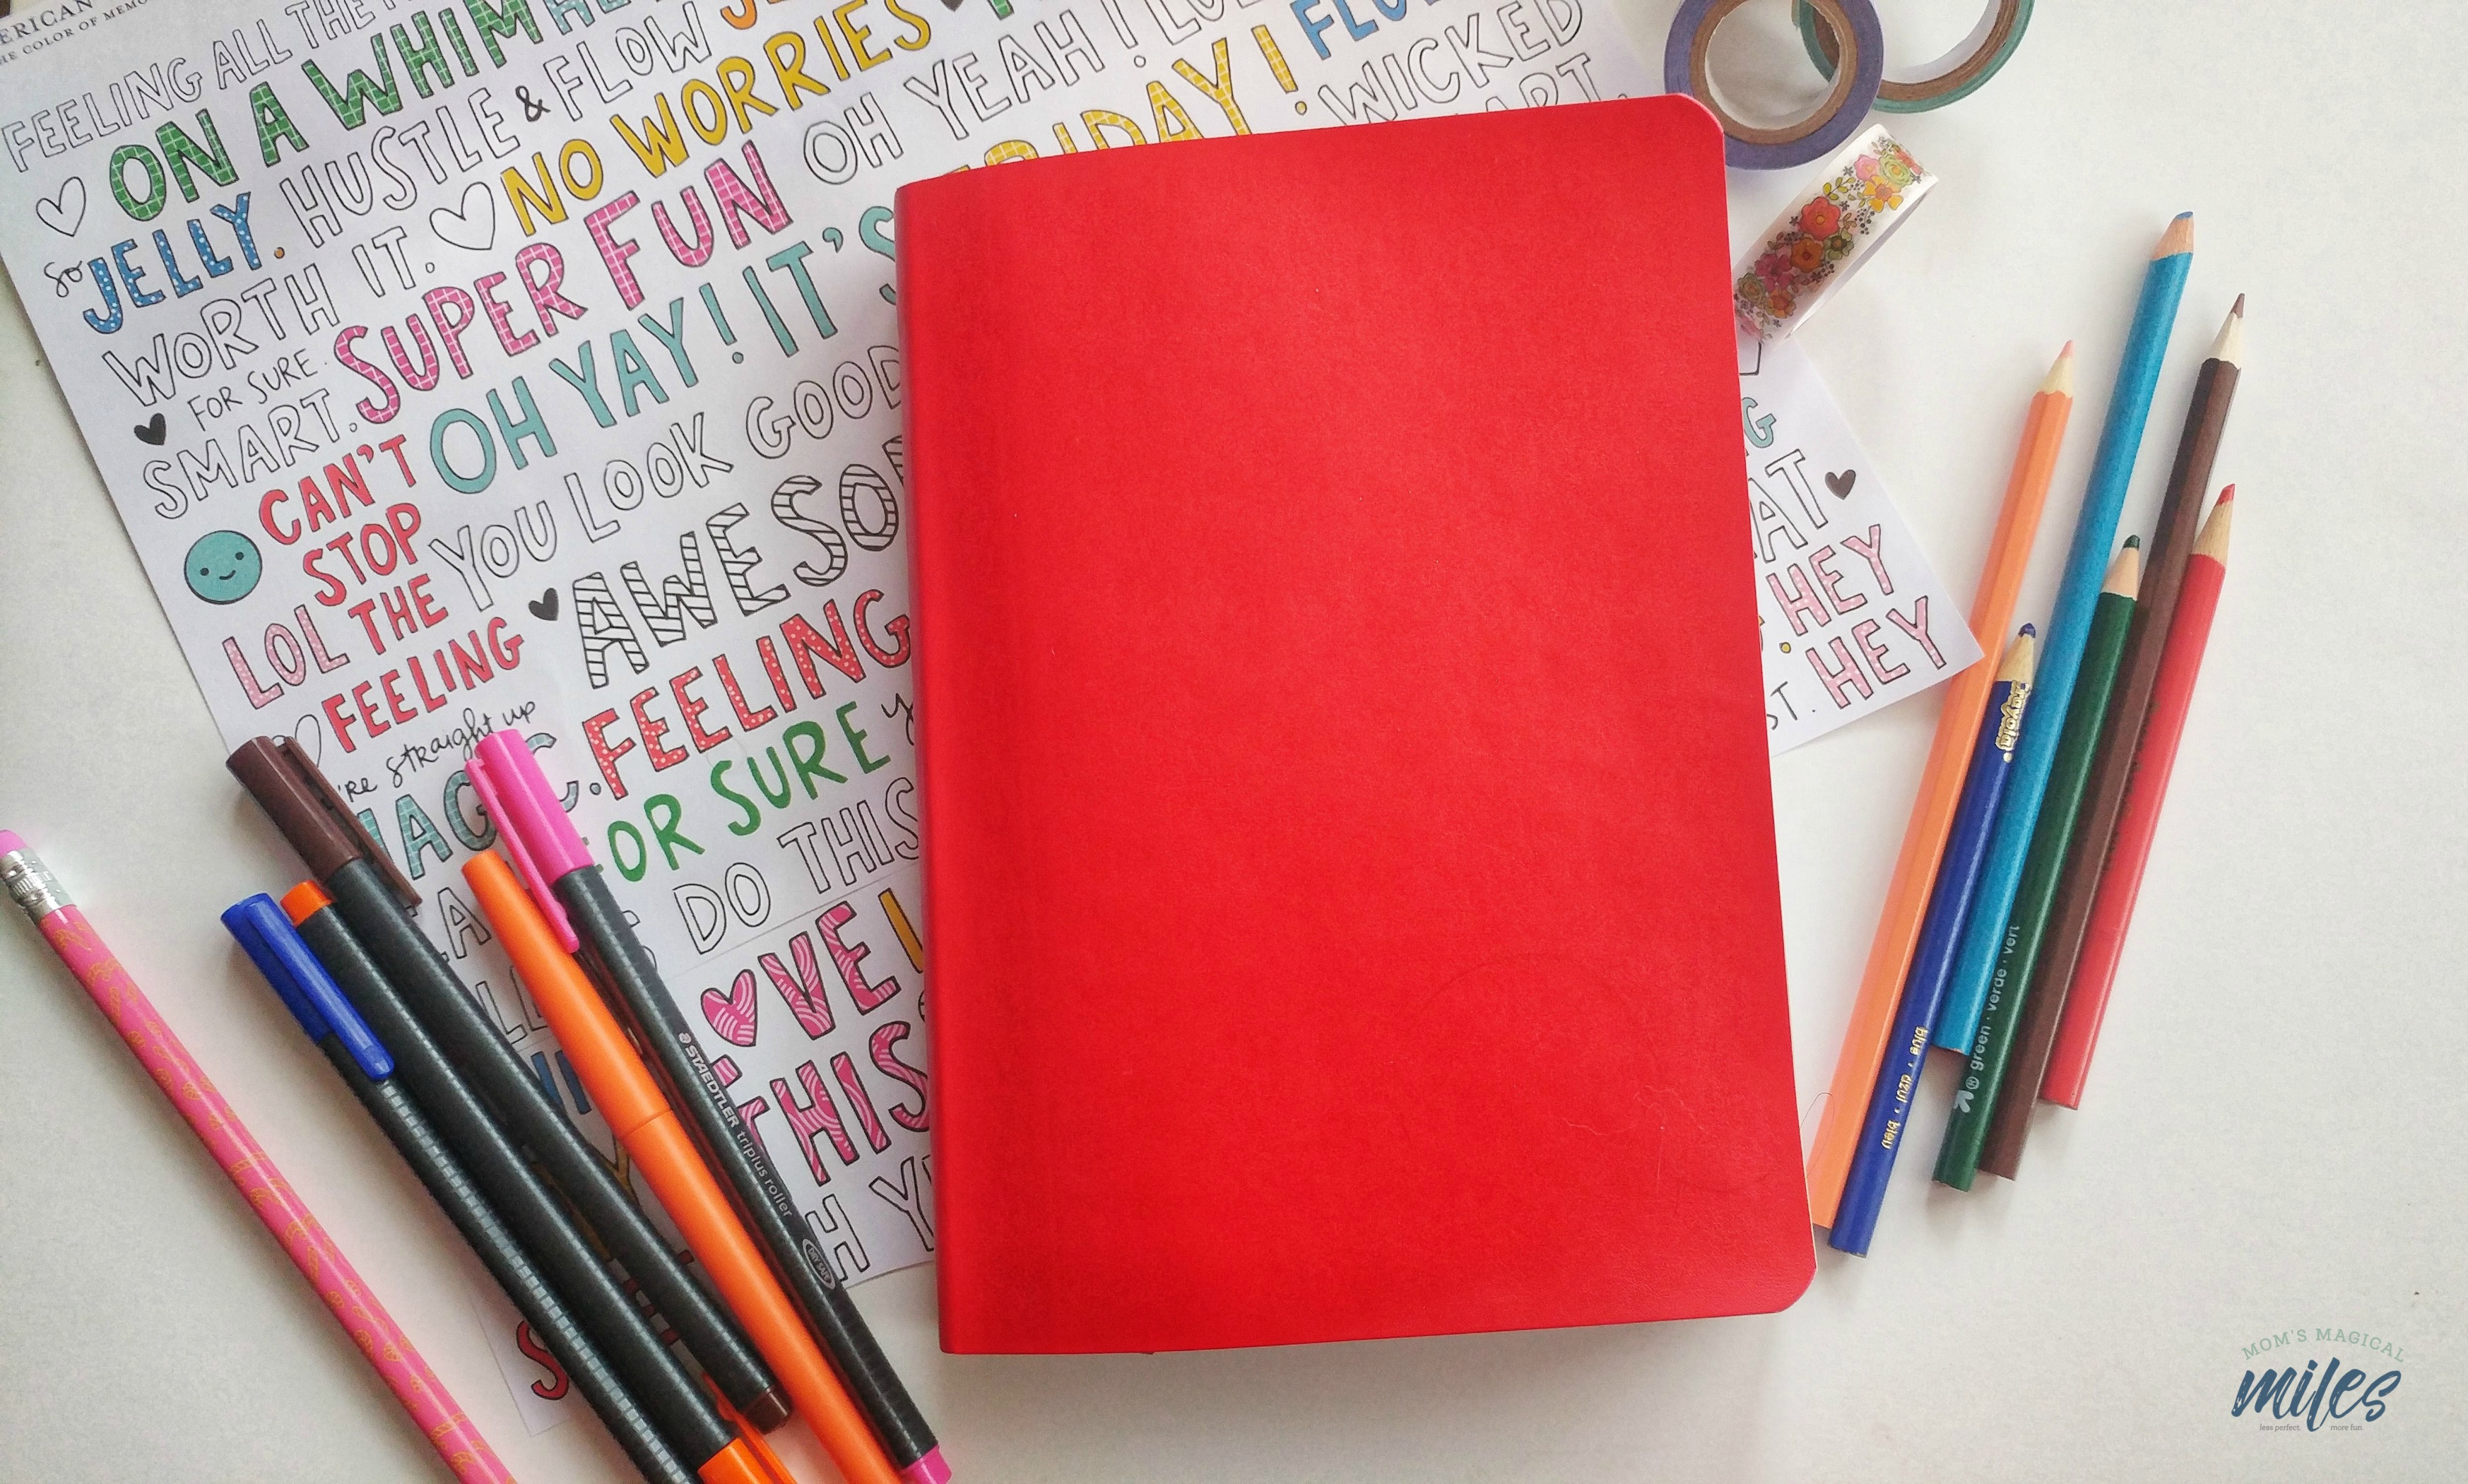 Curious about the Bullet Journal craze? Start with the basics of a beginner bullet journal.